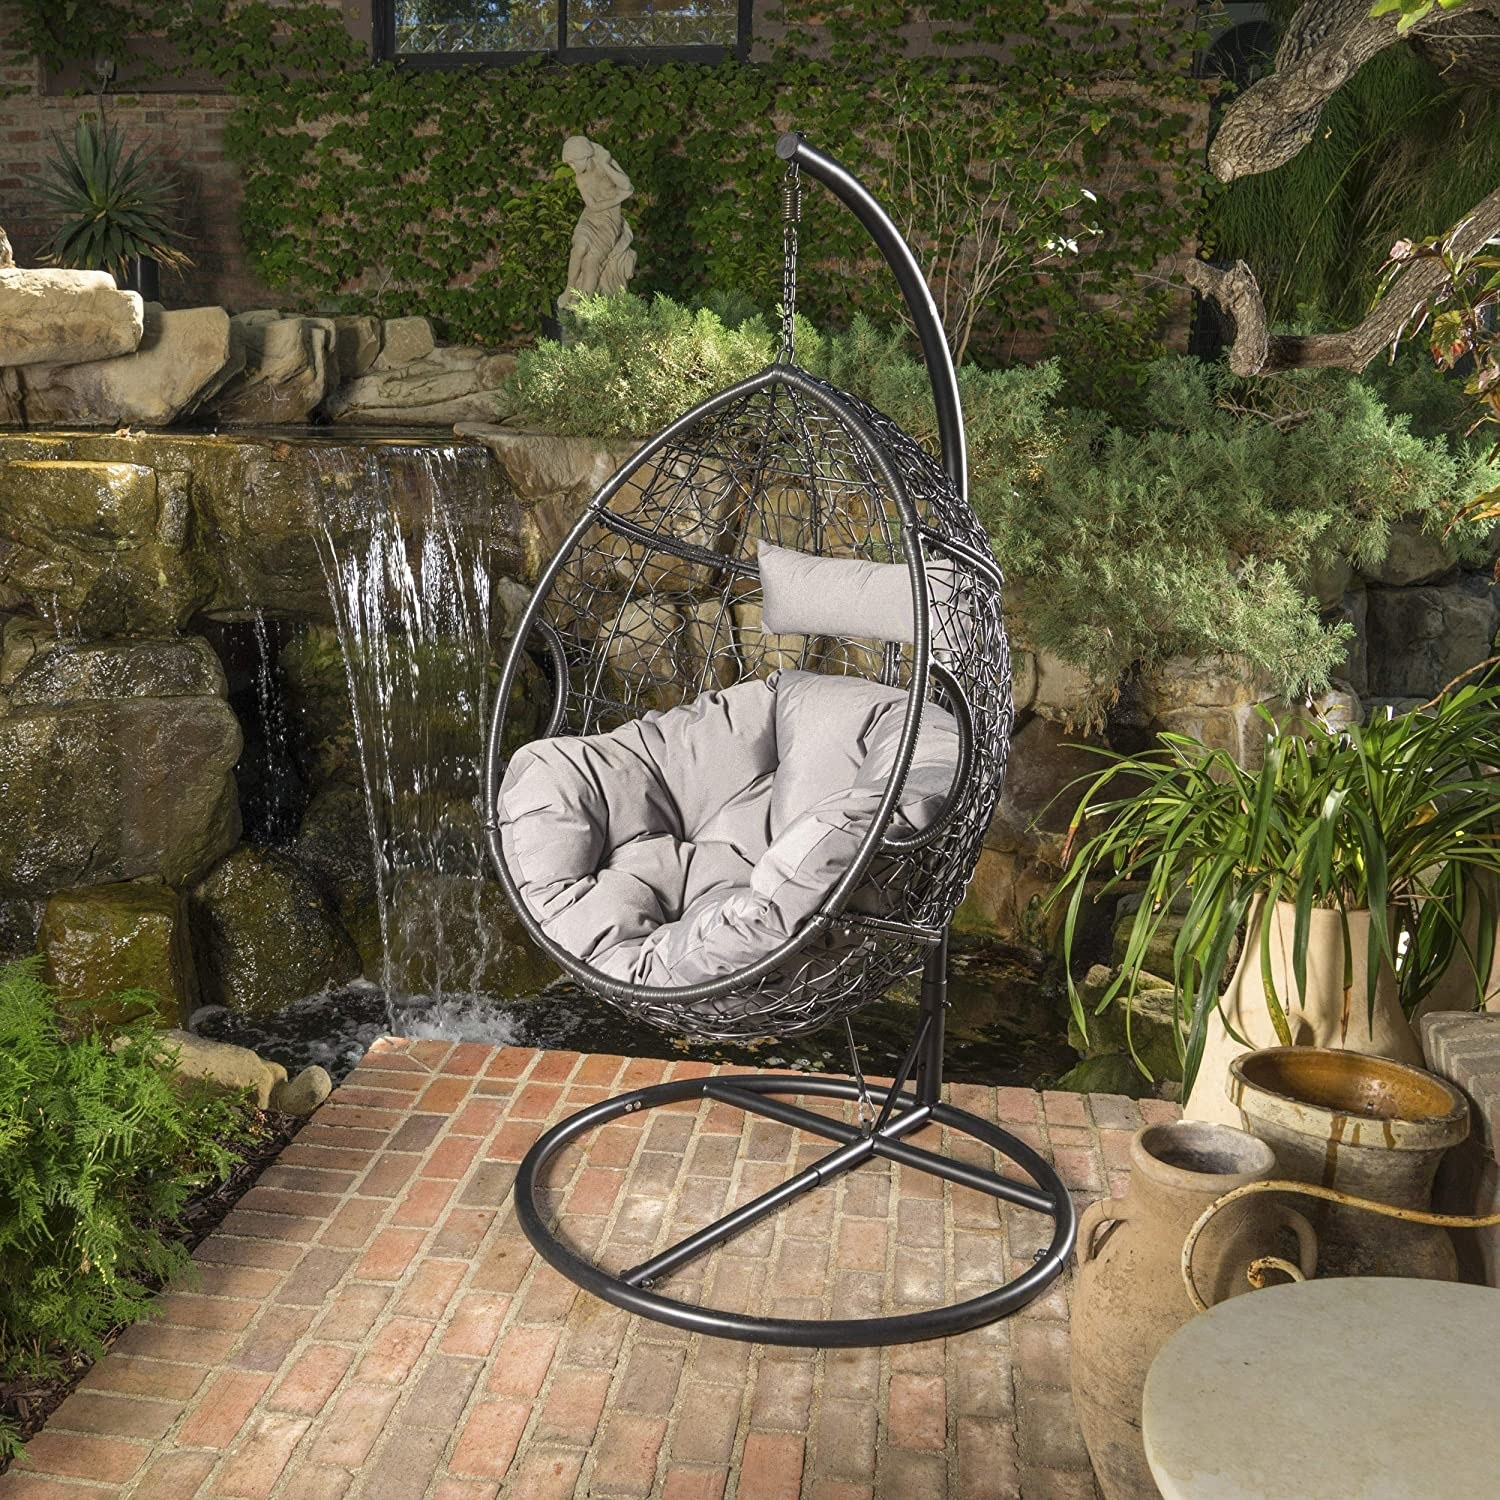 Oval-shaped swing chair with a cushion